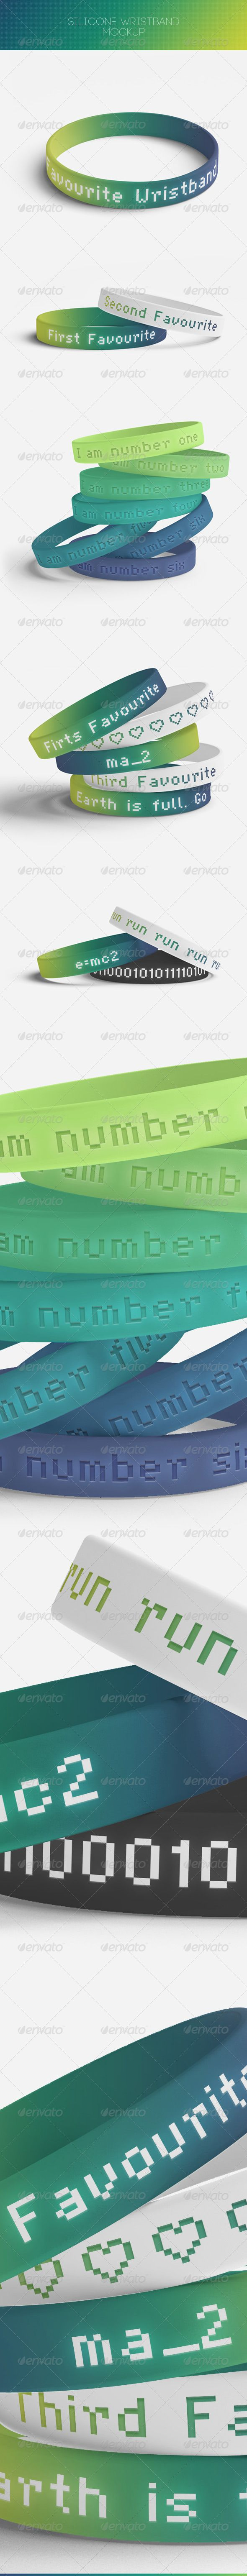 Silicone Wrtistband Mock-Up | #wrtistbandmockup | Download: http://graphicriver.net/item/silicone-wrtistband-mockup/8586526?ref=ksioks